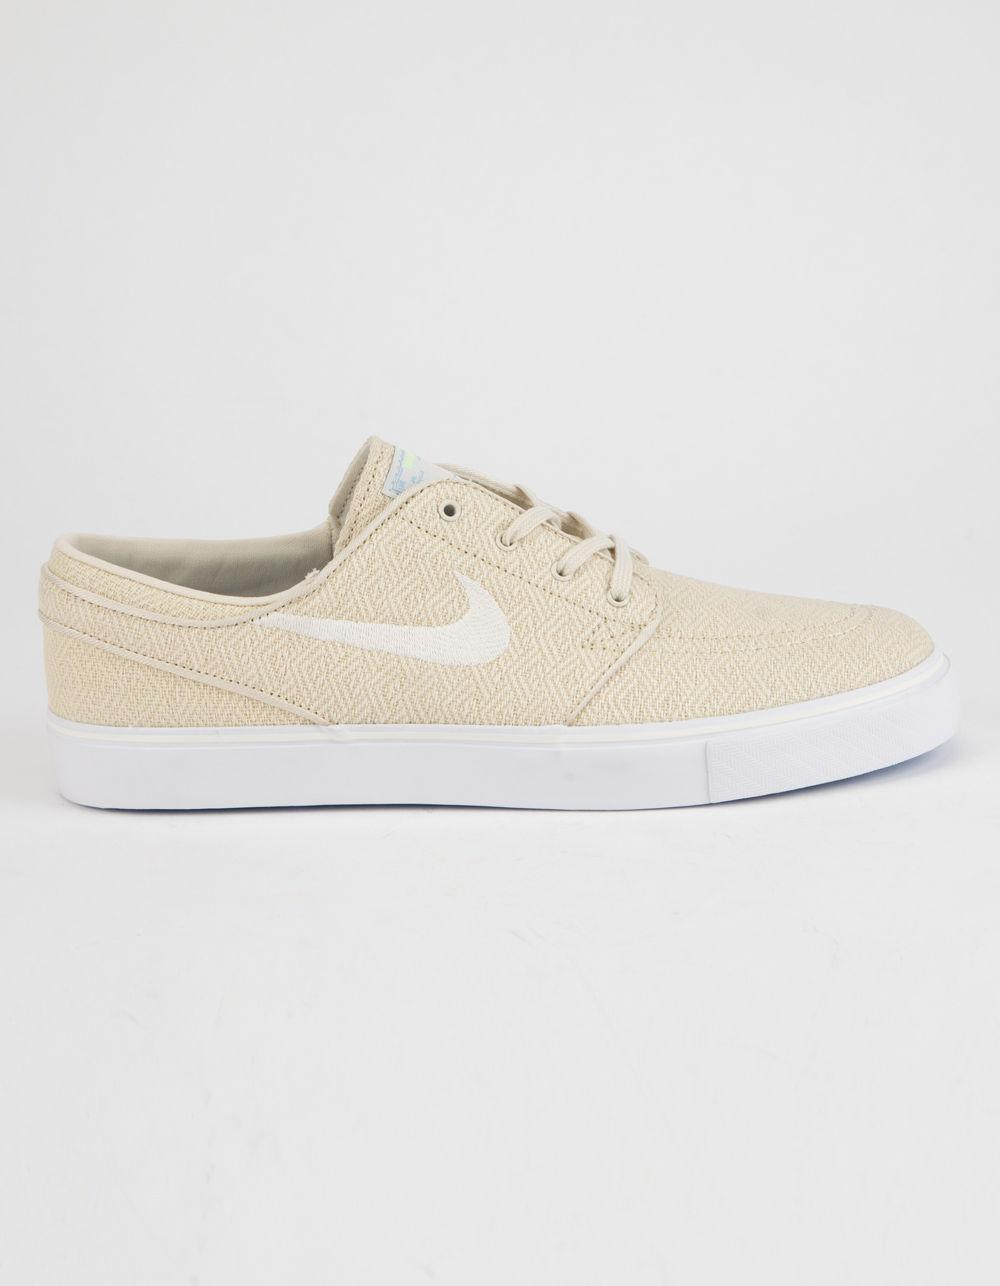 7b5f664452 Nike Zoom Stefan Janoski Canvas Fossil & Sail White Mens Shoes in ...